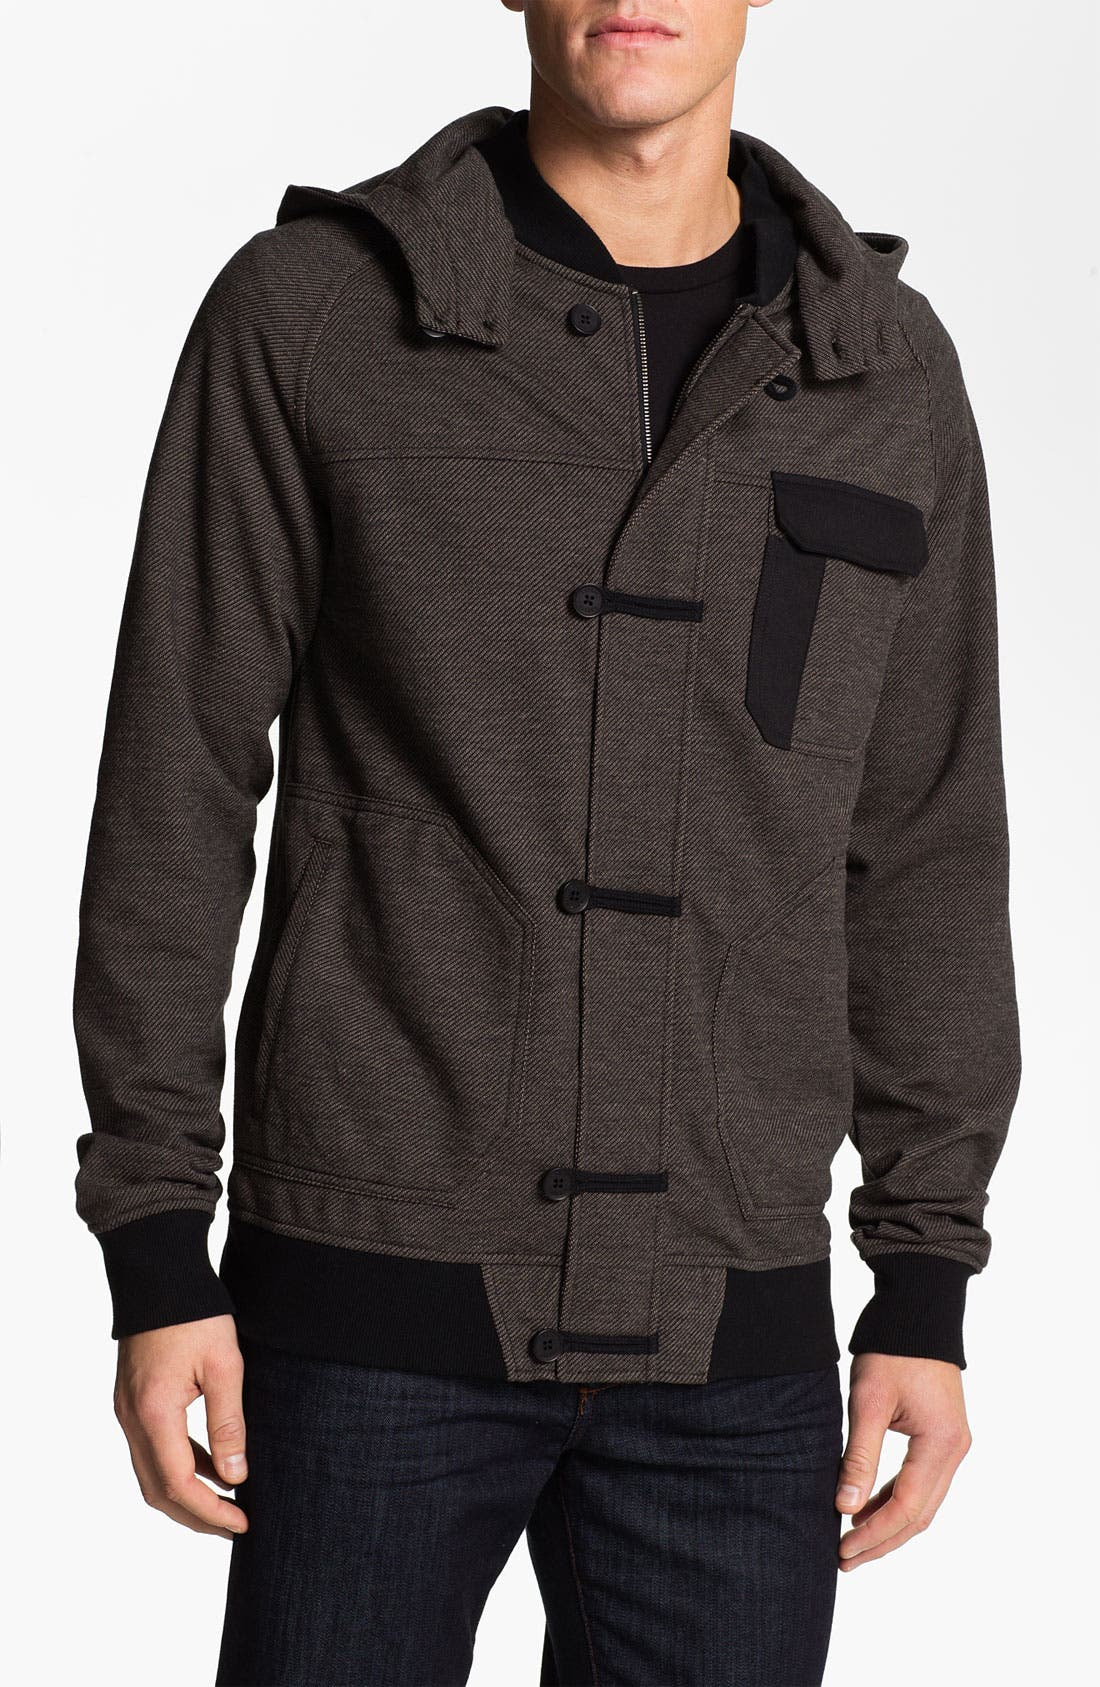 Alternate Image 1 Selected - Ezekiel 'Jaxson' Sweatshirt Jacket